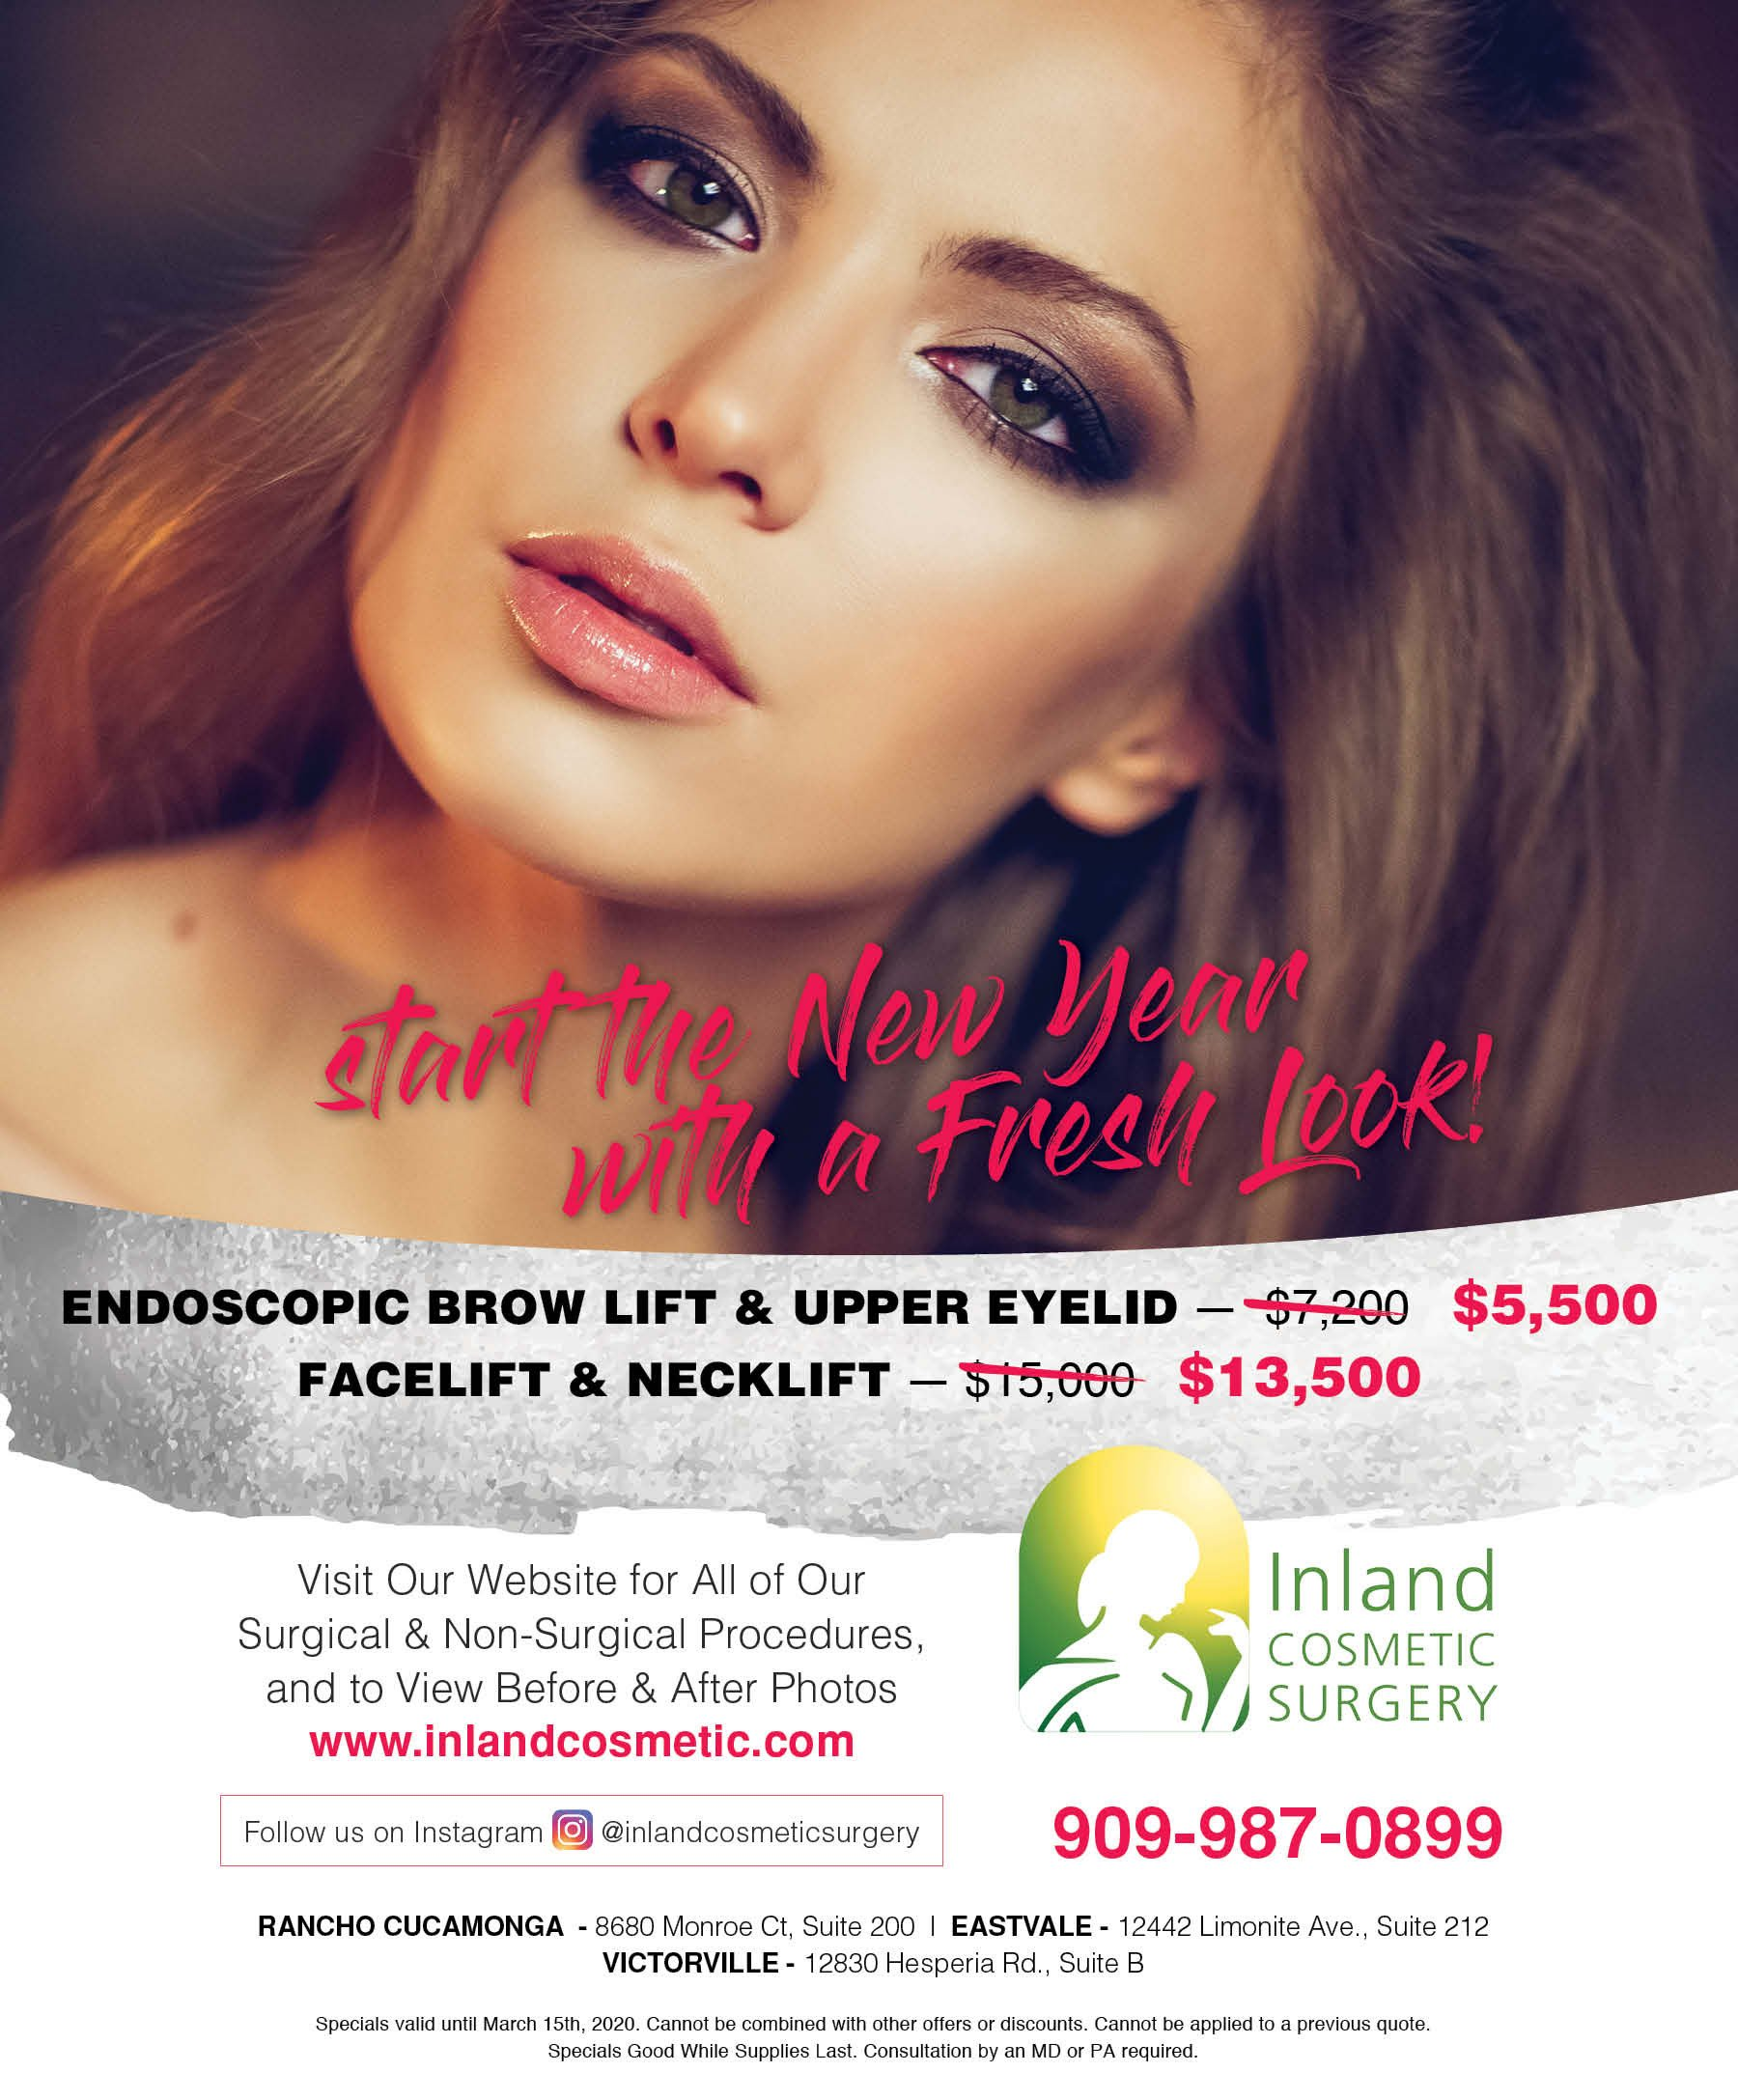 Start the New Year with a Fresh Look! Savings on Endoscopic Brow Lift and Upper Eyelid + Facelift and Necklift